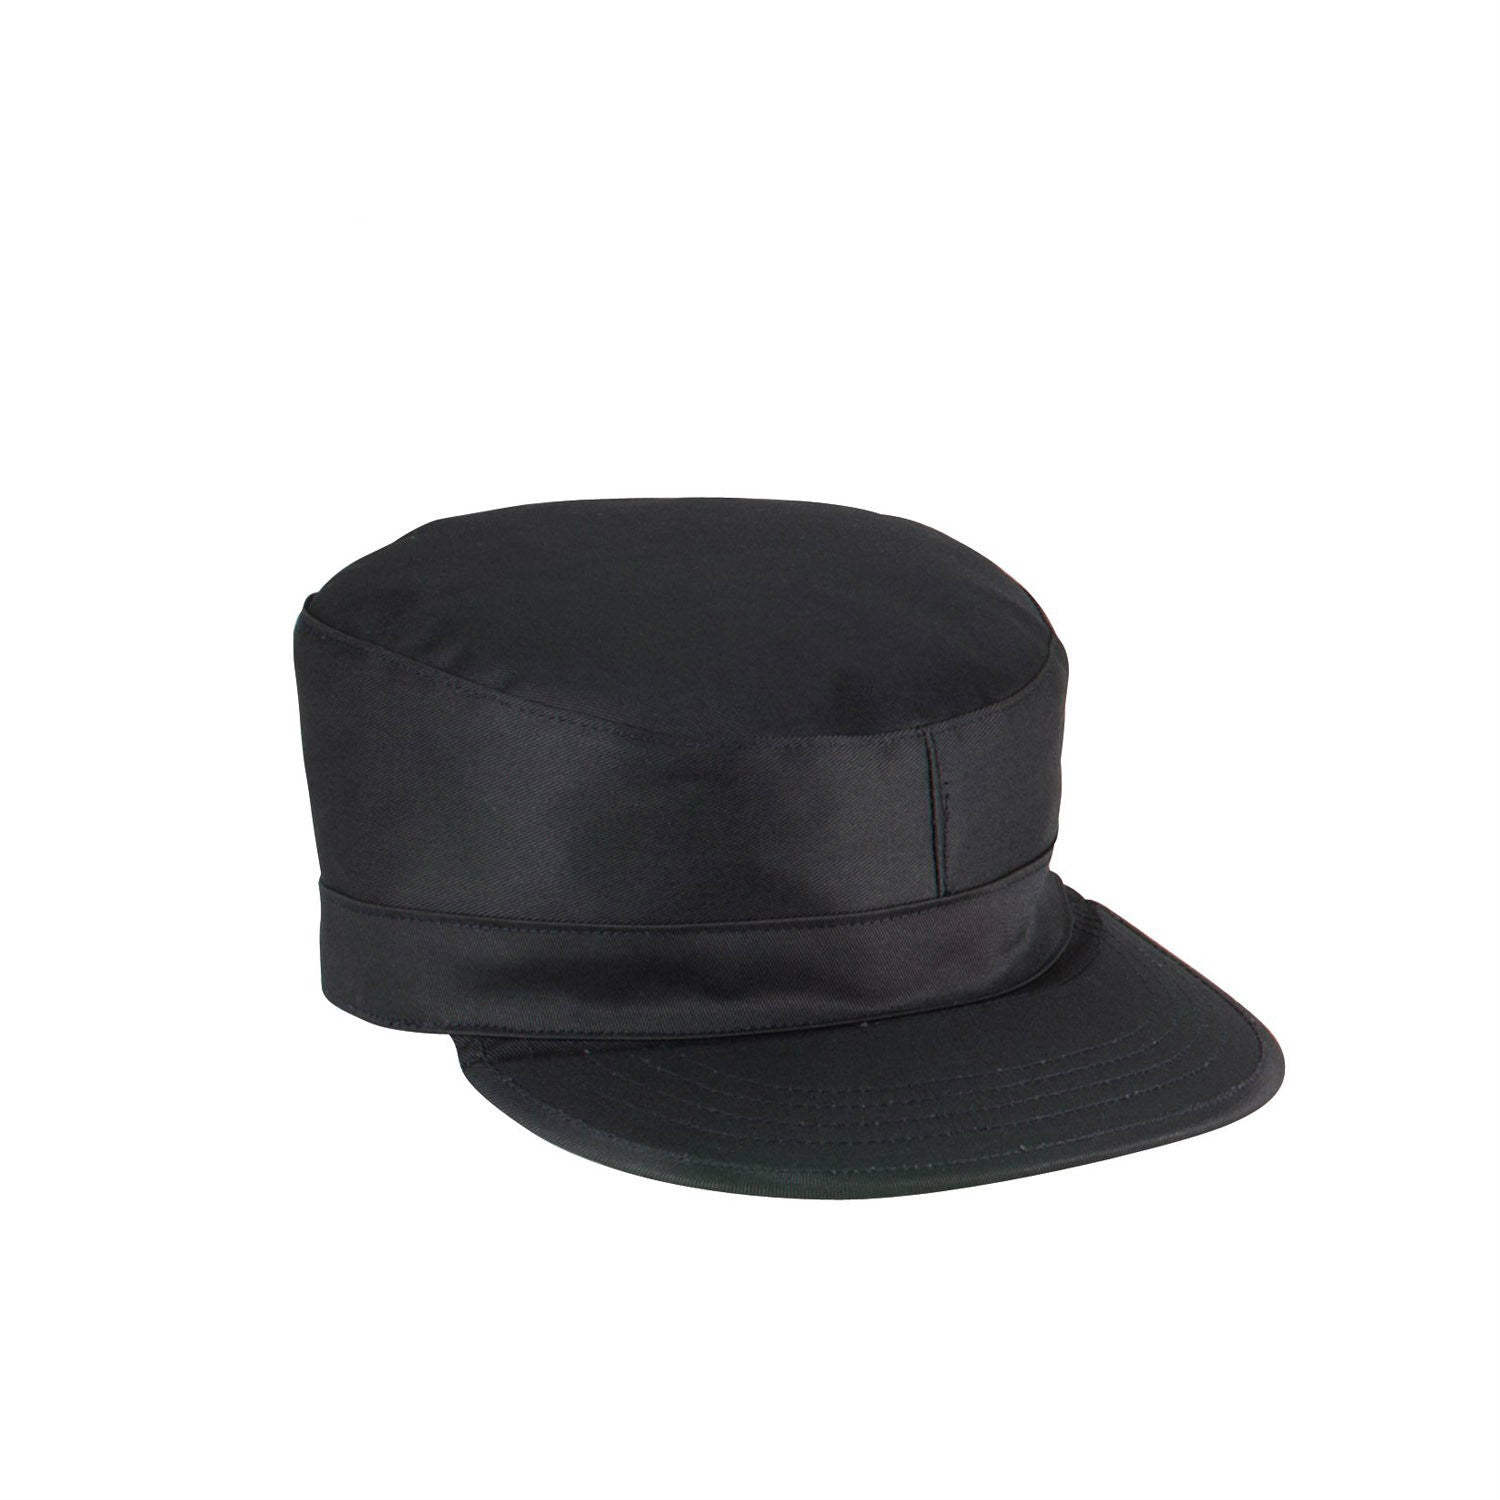 2 Ply Ranger Patrol Hat Black - Indy Army Navy